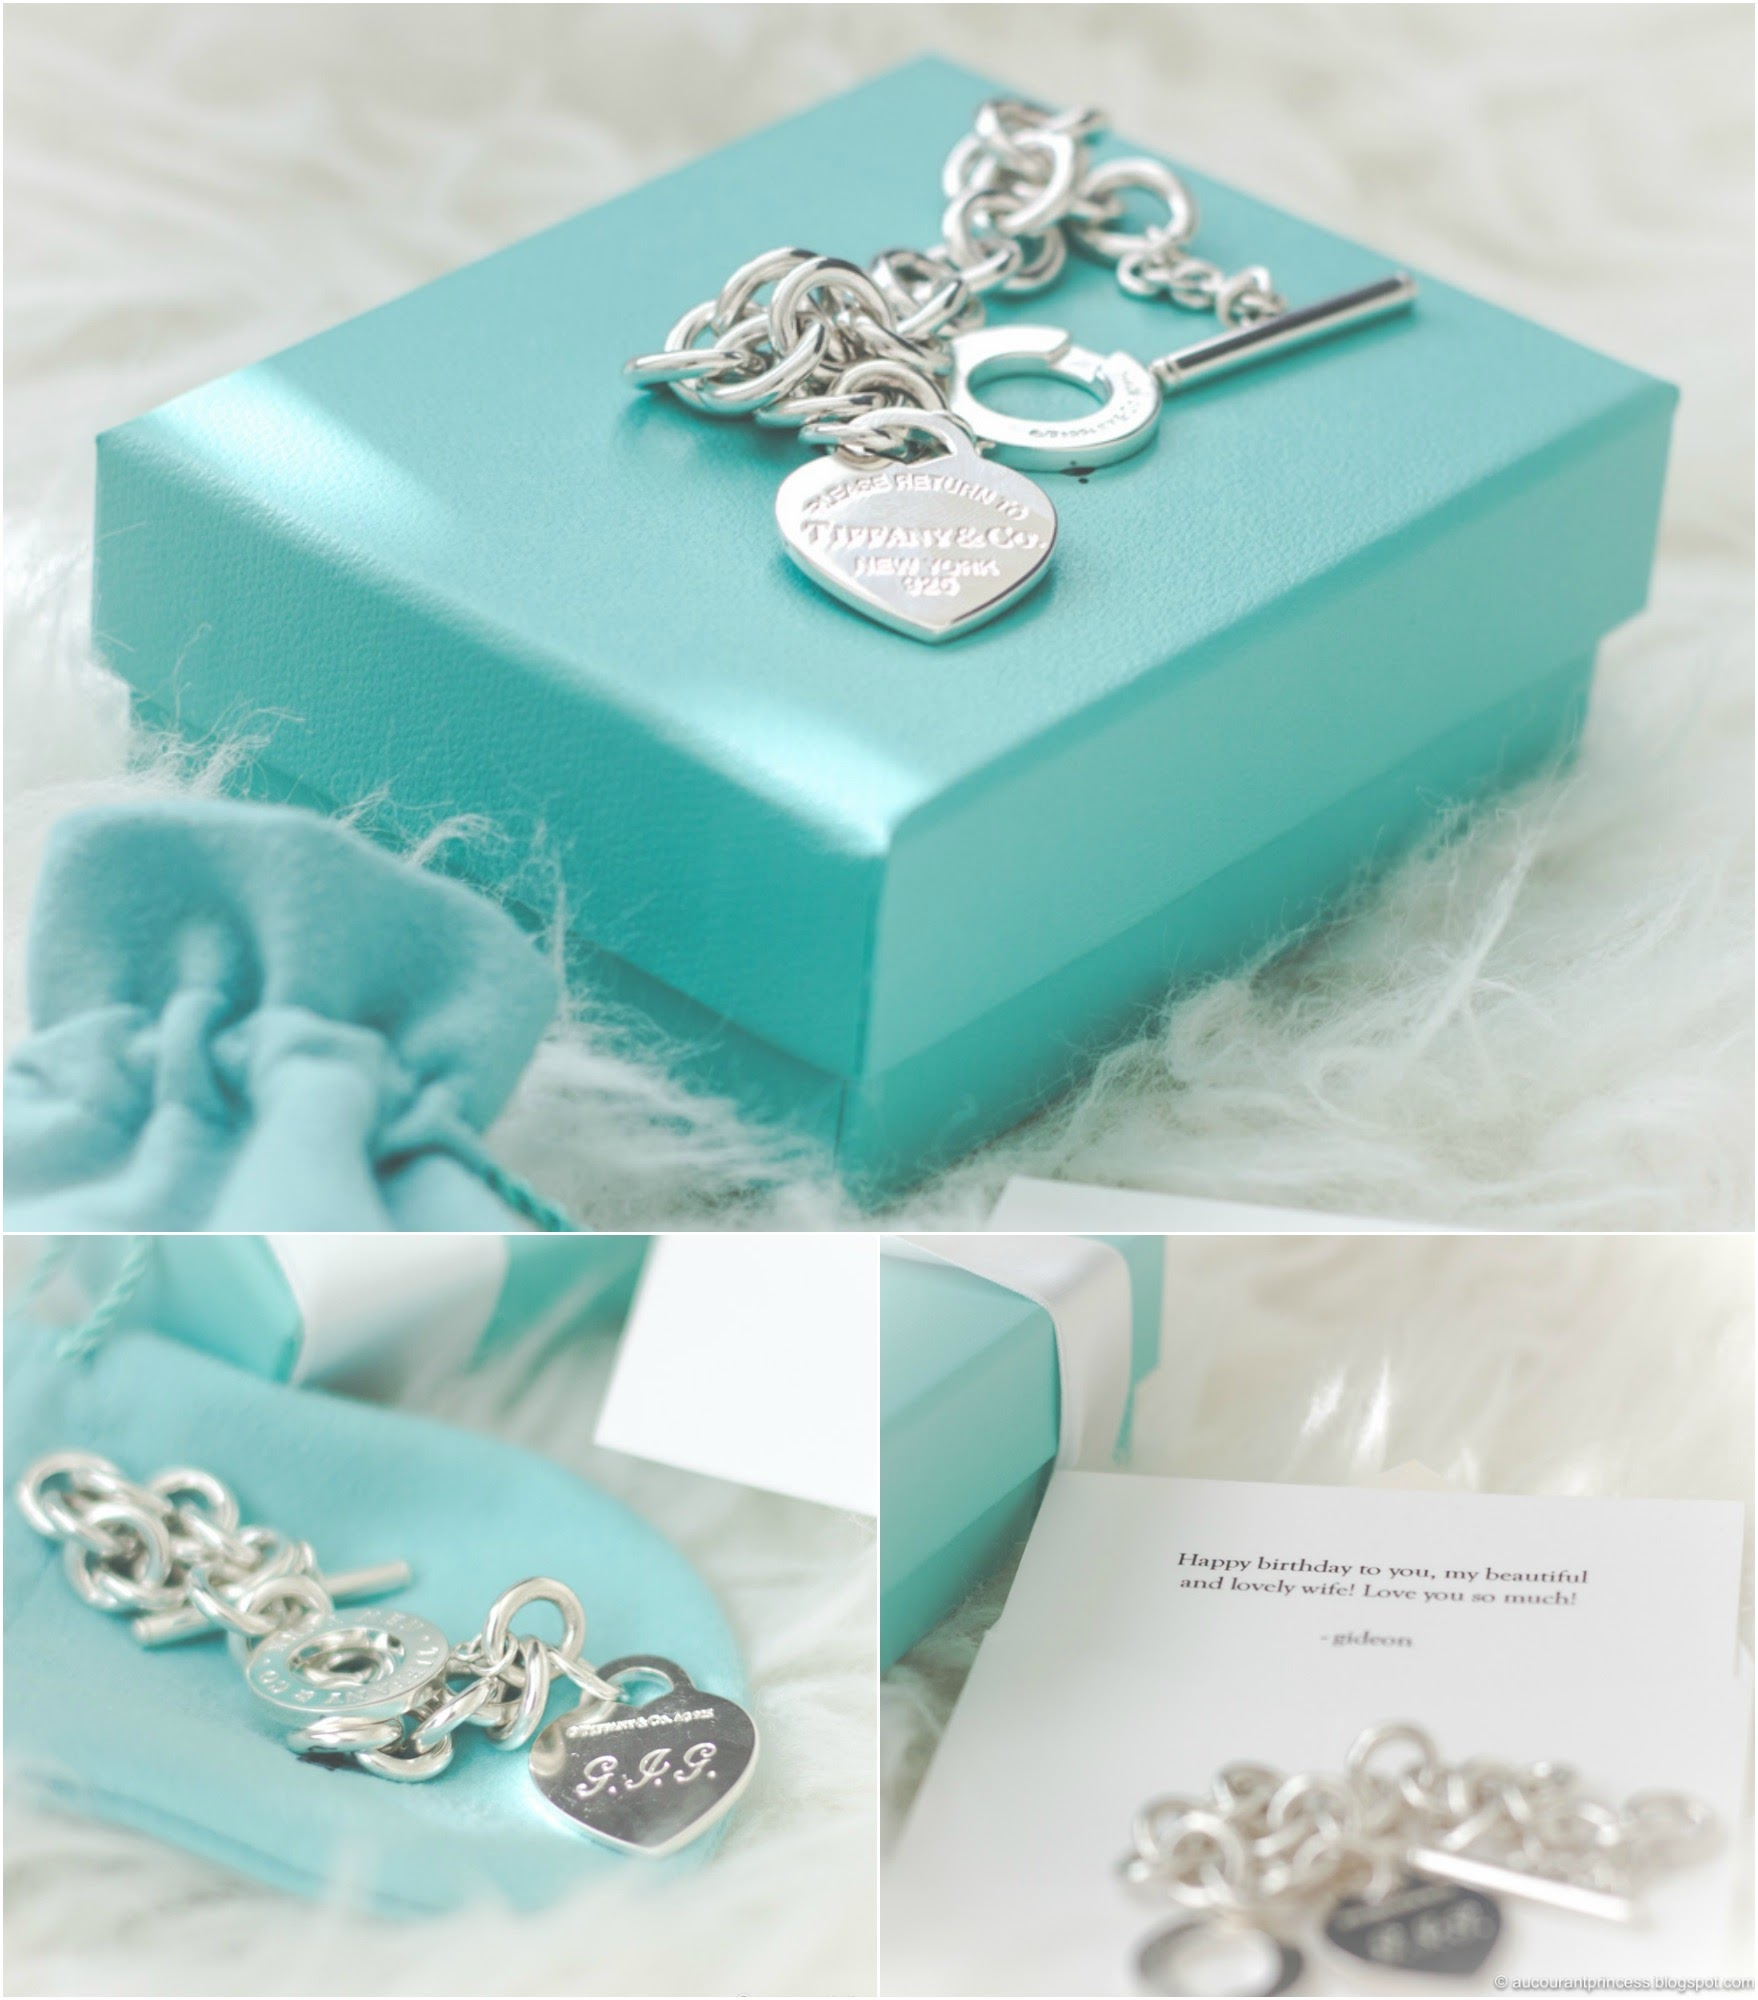 Tiffany & Co Bracelet with Personalized Hand Engraved Monograms